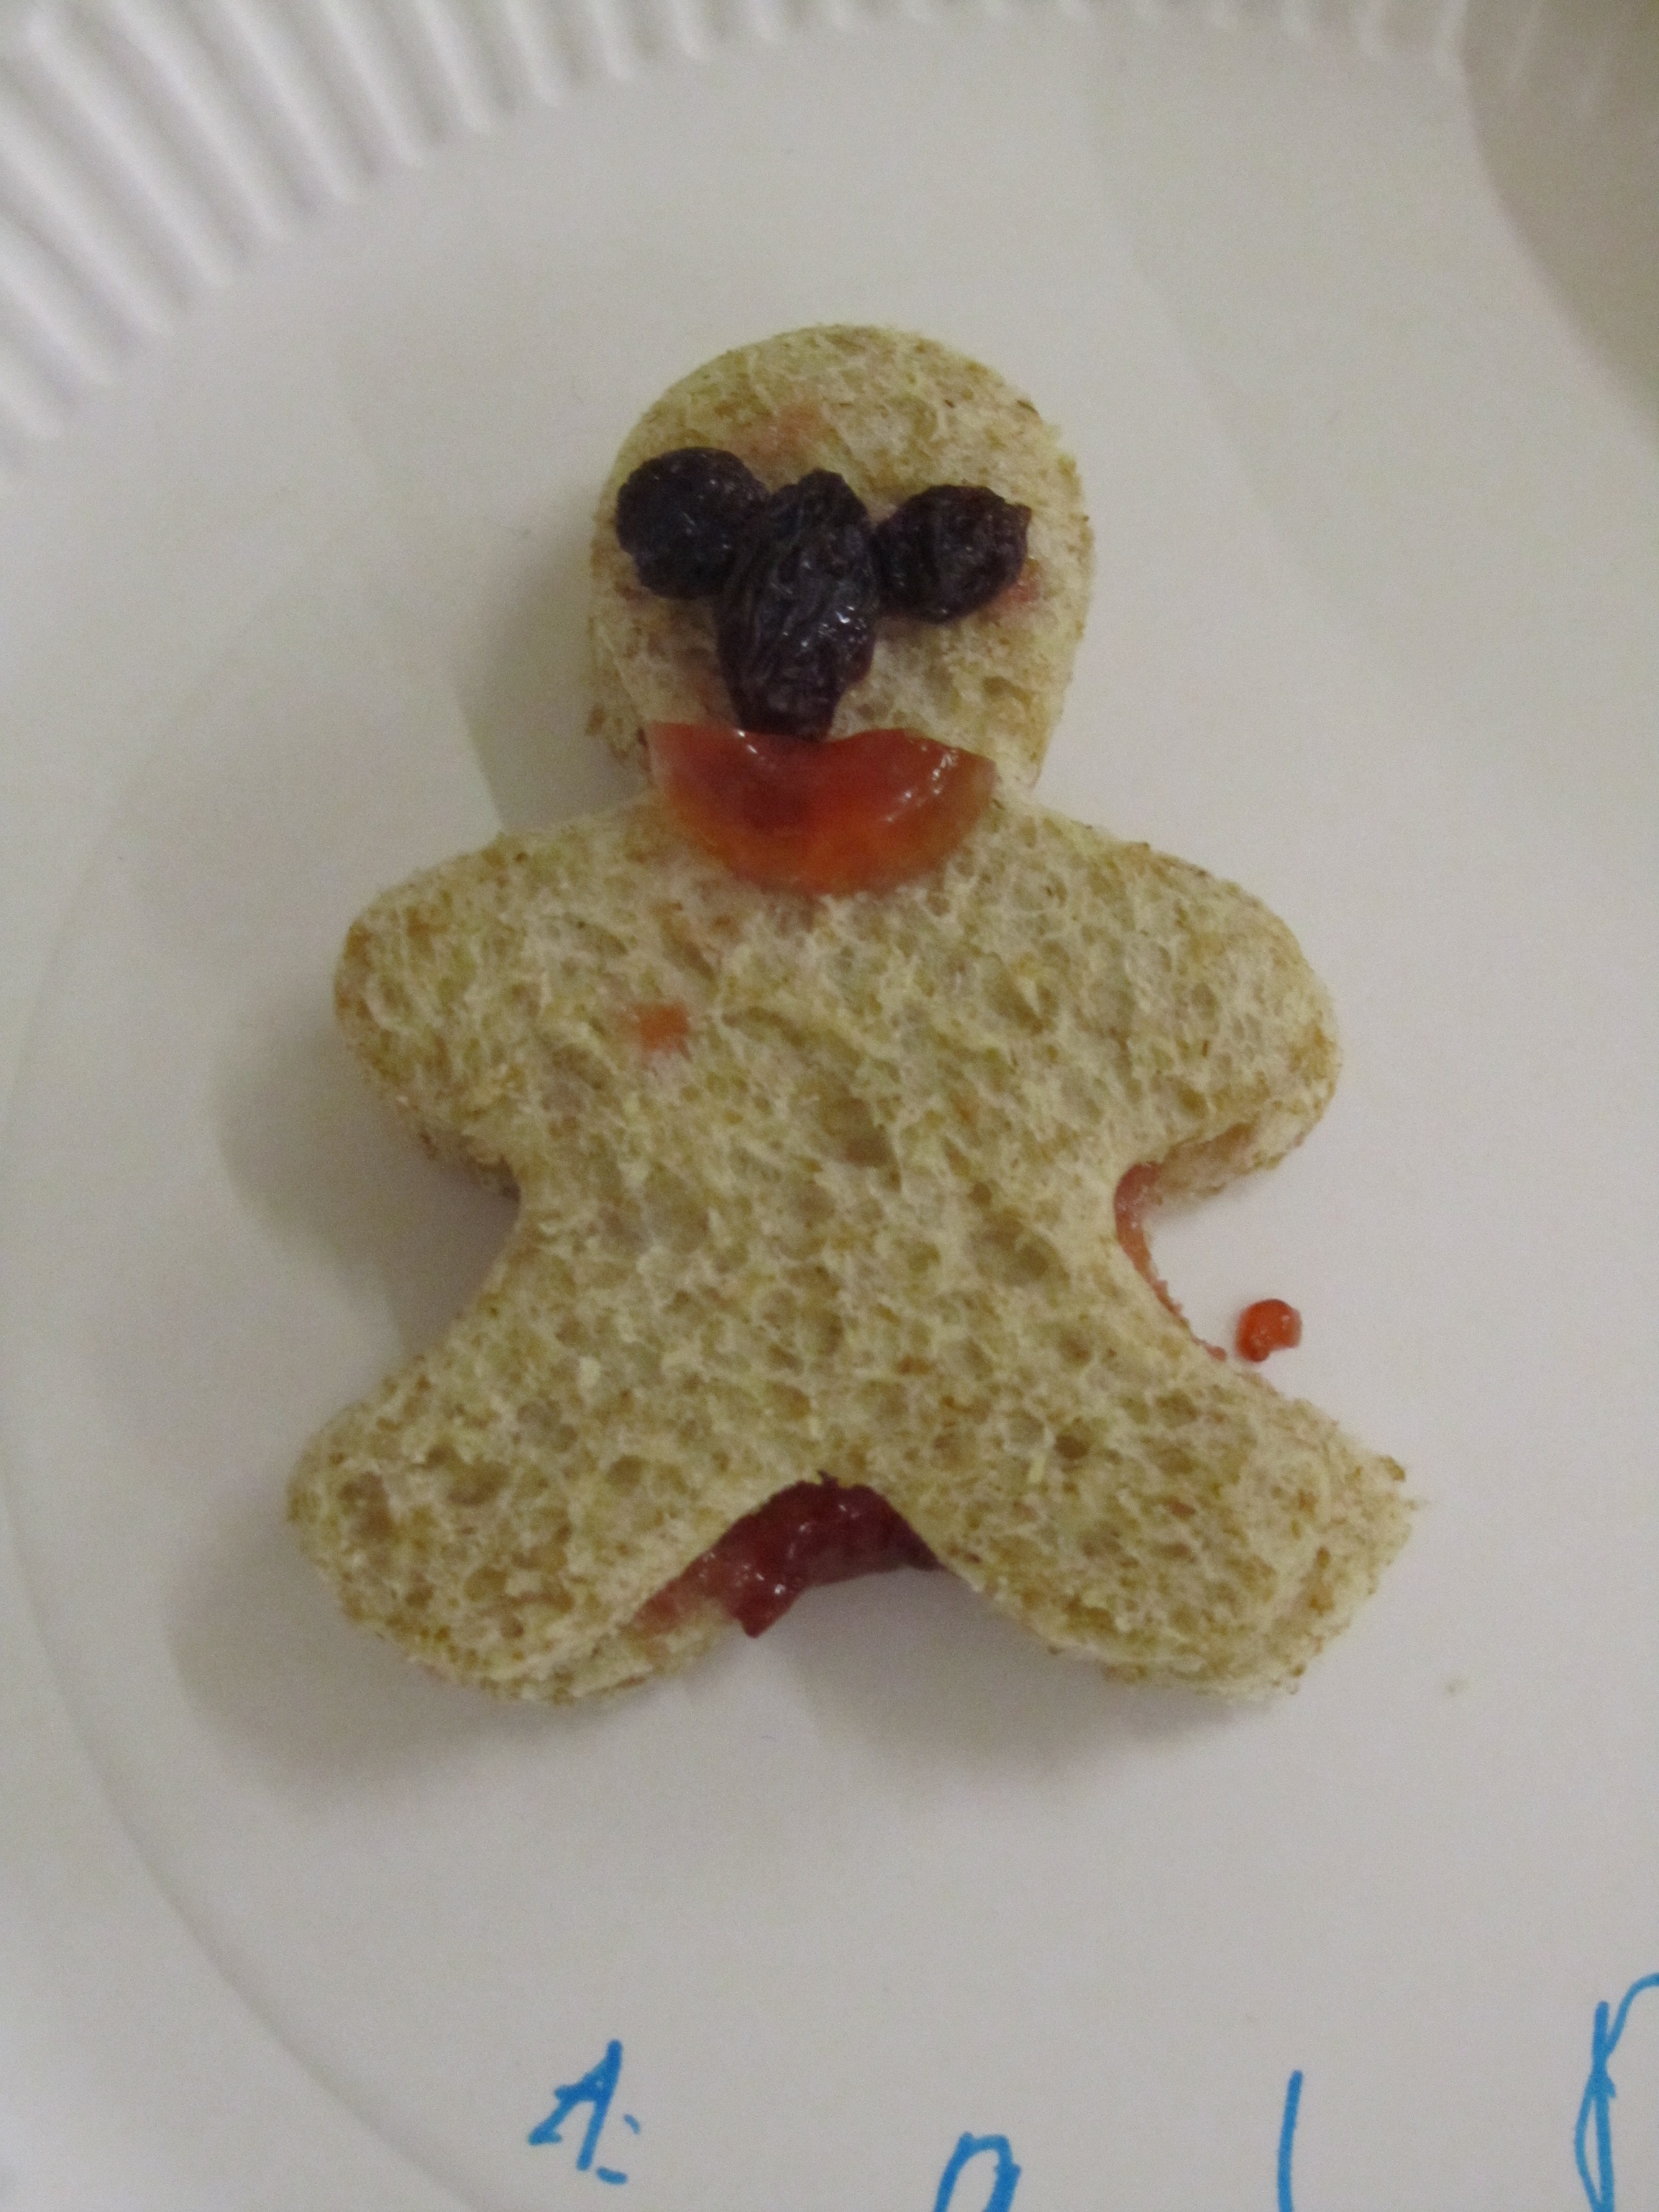 A person made out of bread